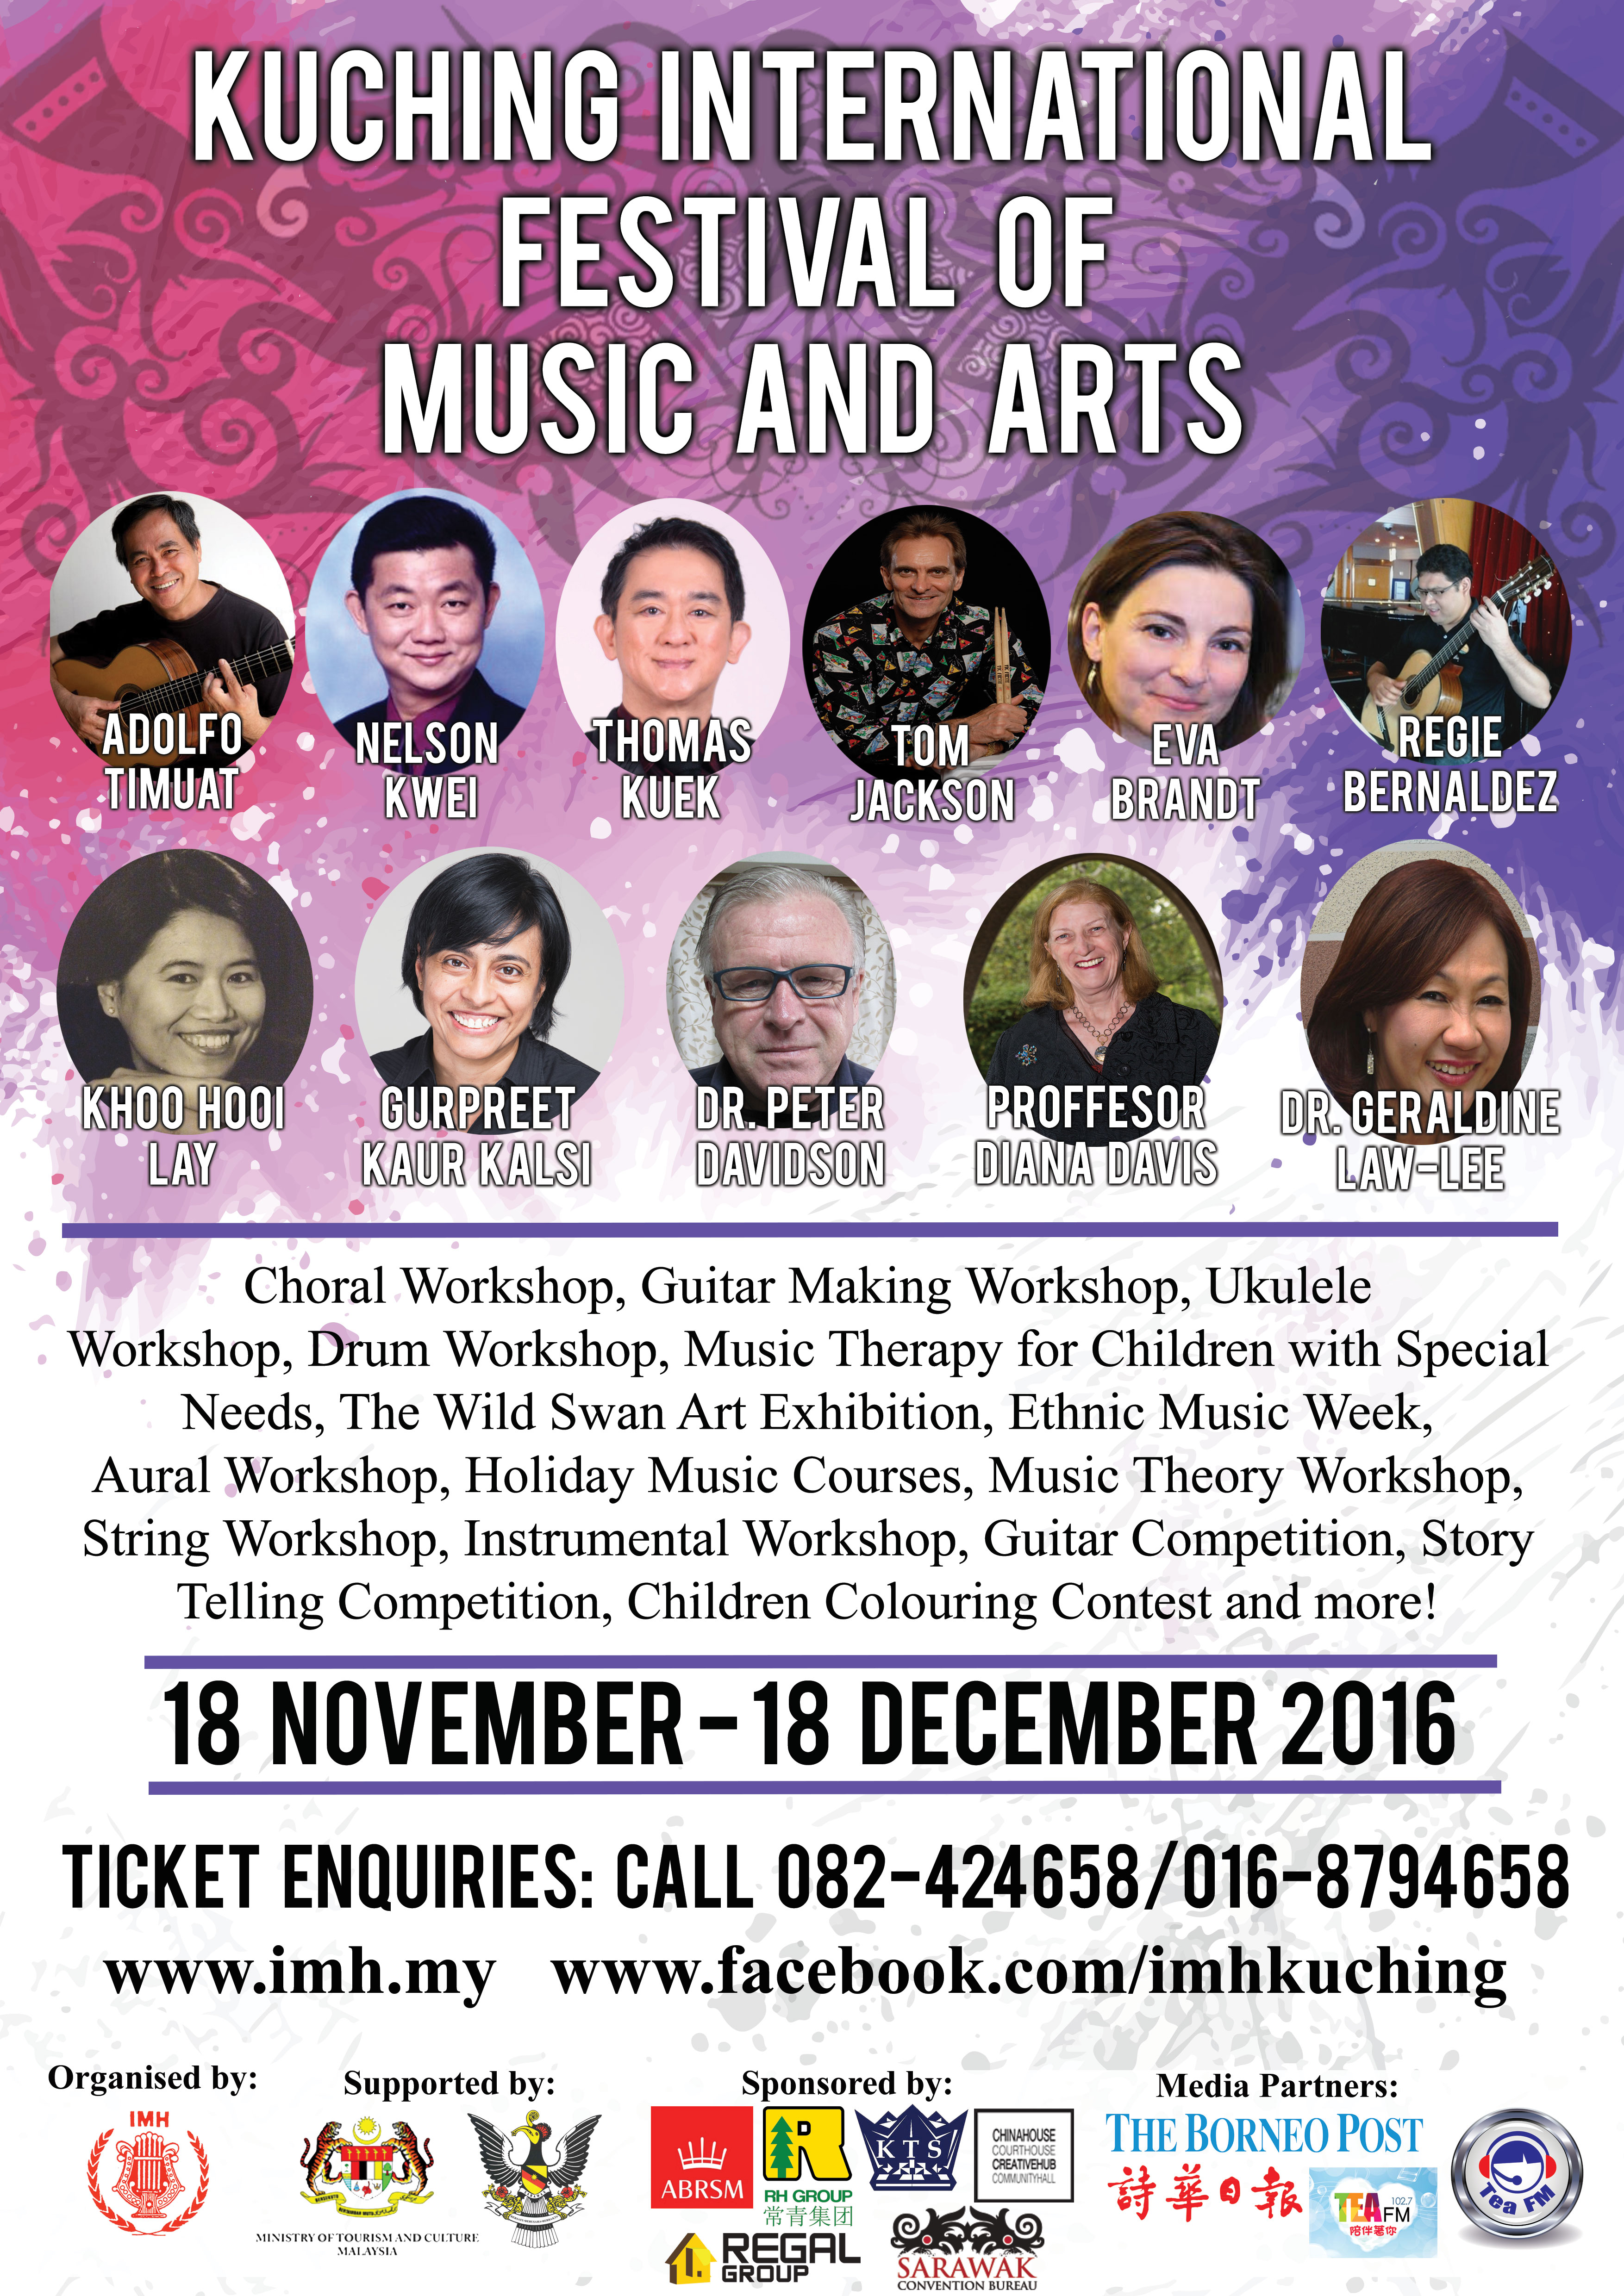 Kuching International Festival of Music and Arts